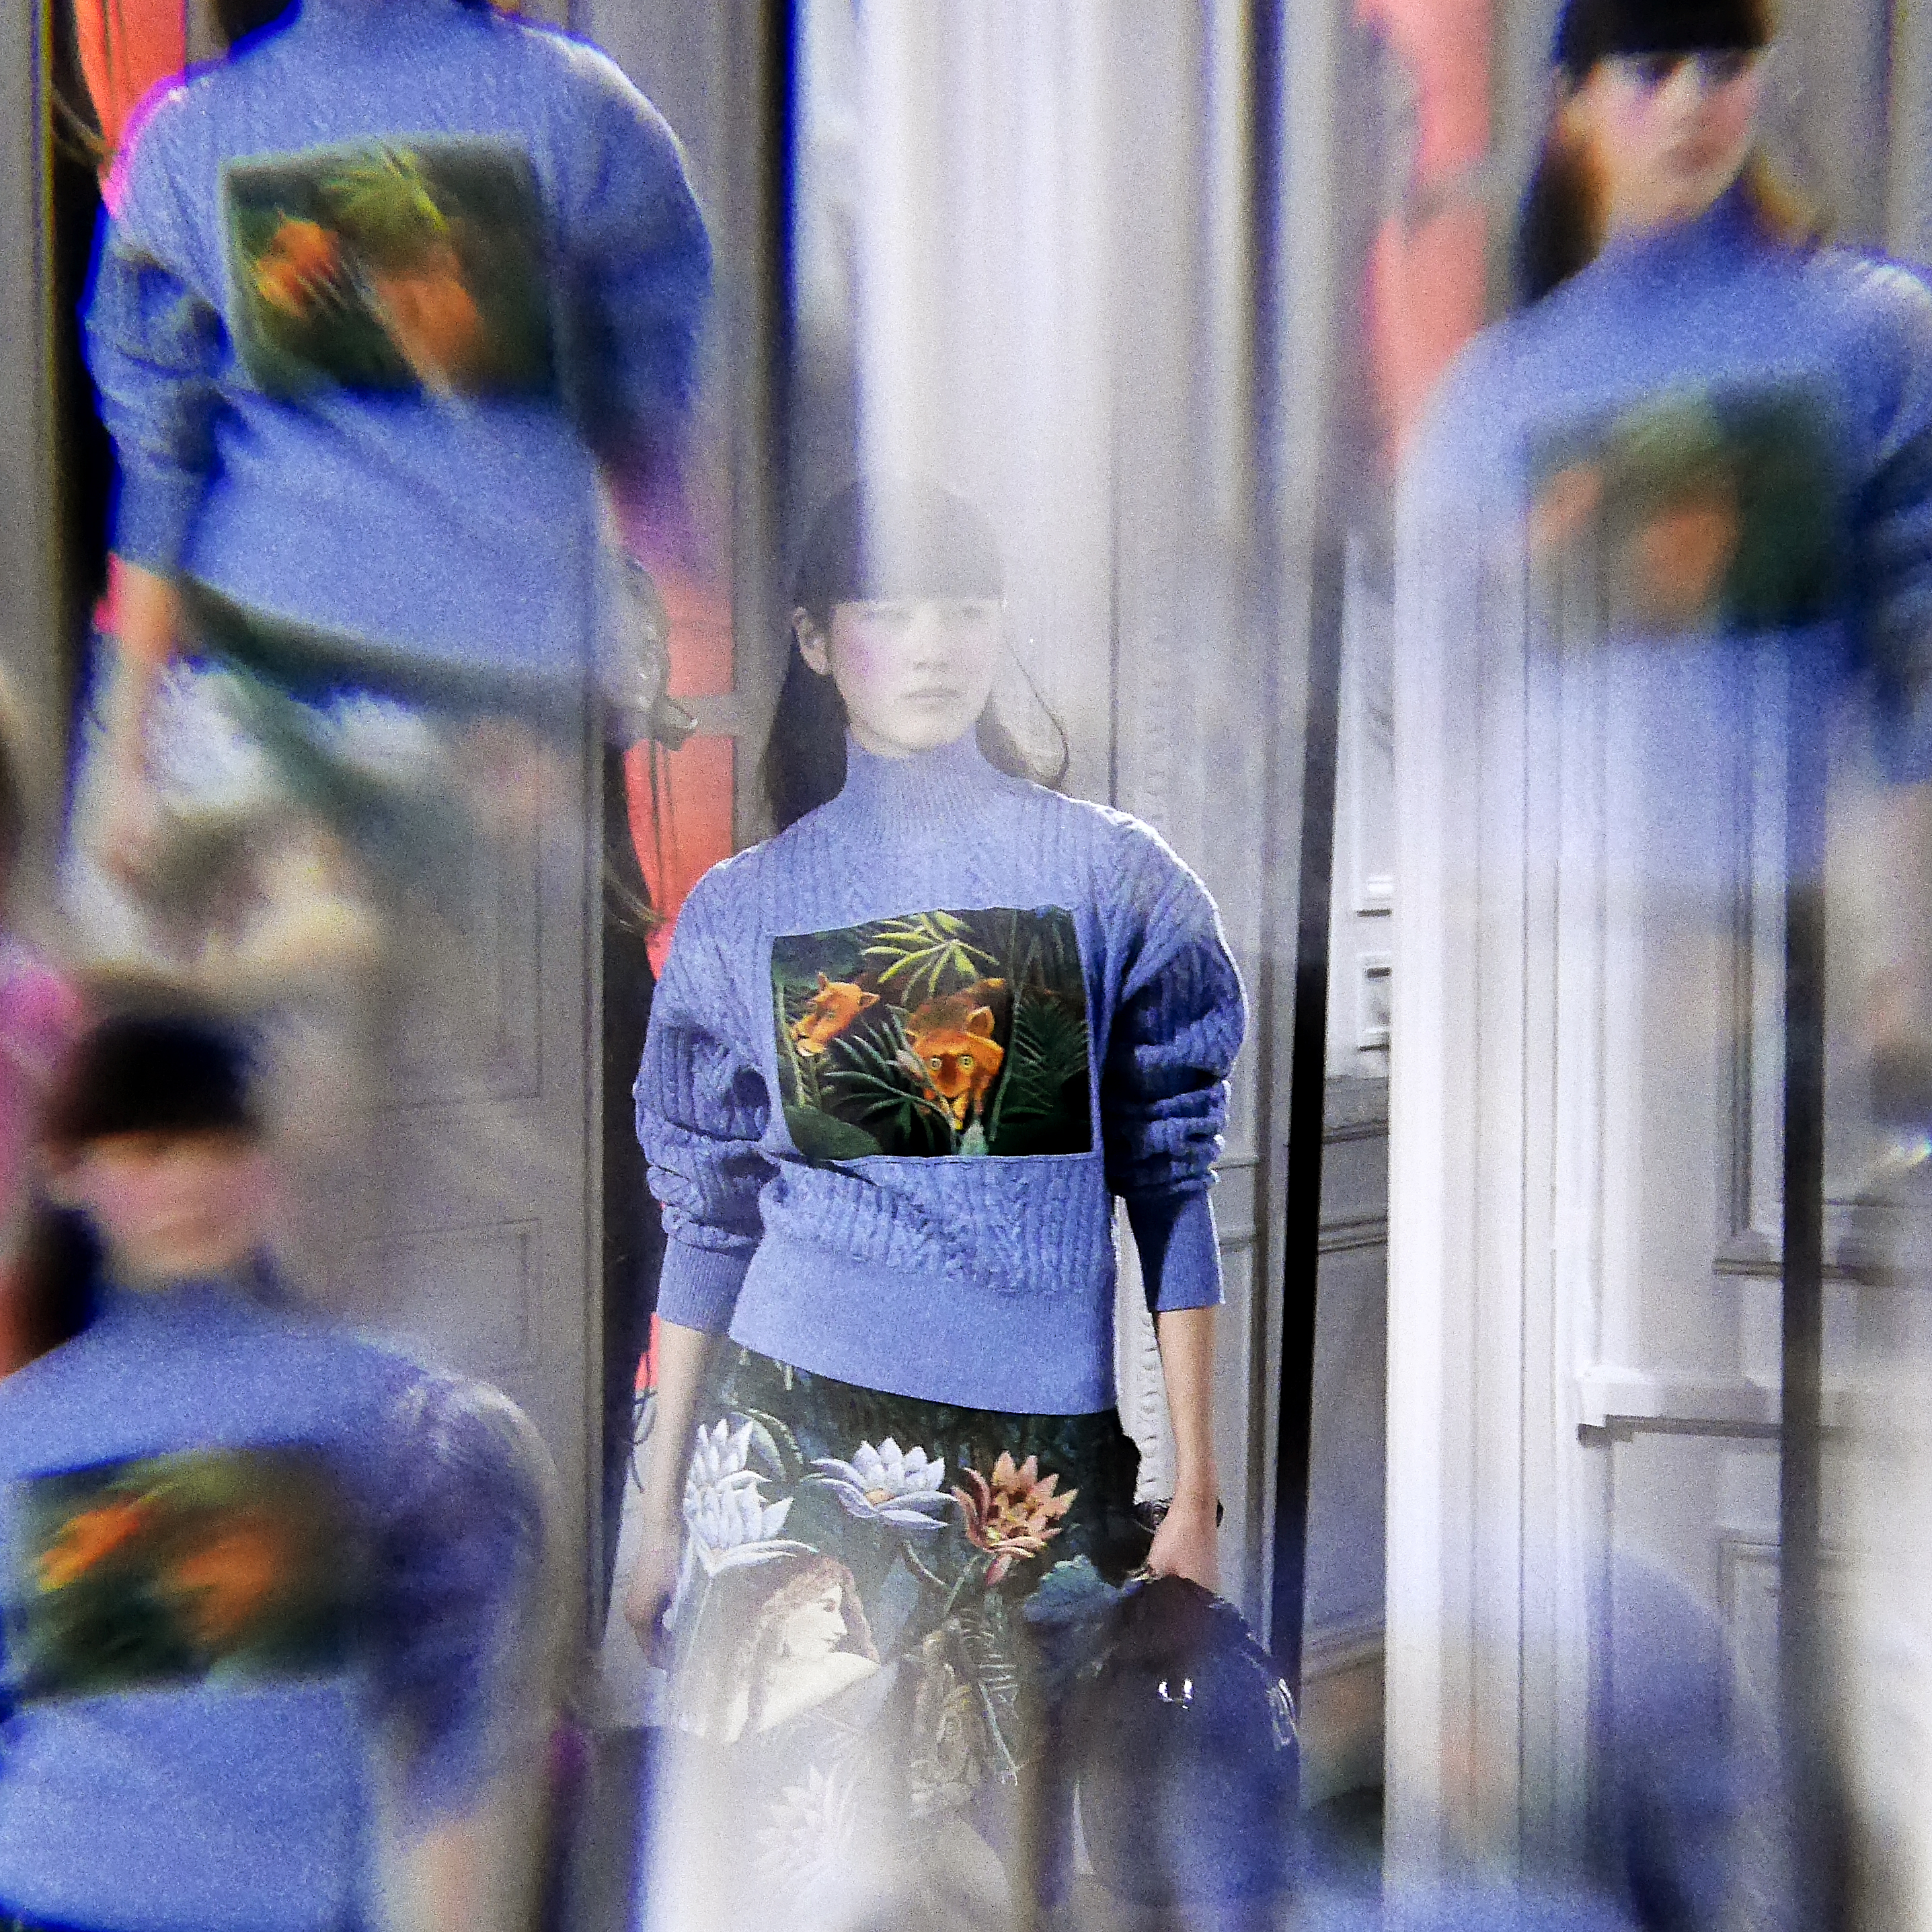 KENZO : LA COLLECTION MEMENTO N°3 – A VISION BY FRANK PERRIN